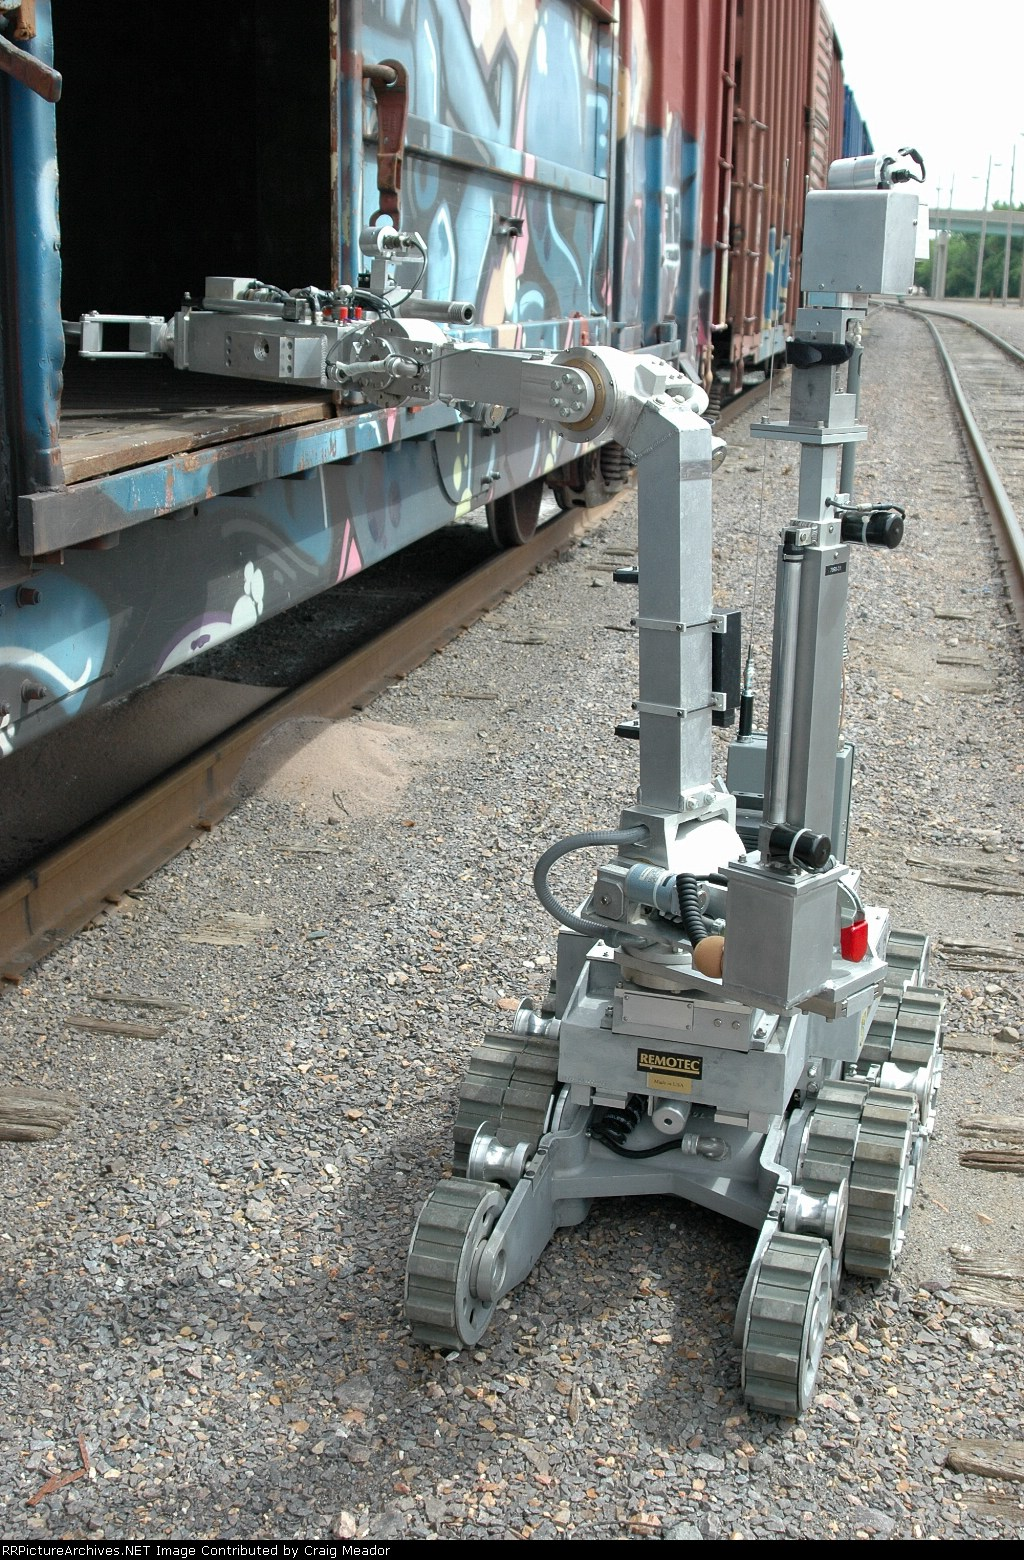 The bomb team robot peeking into a boxcar